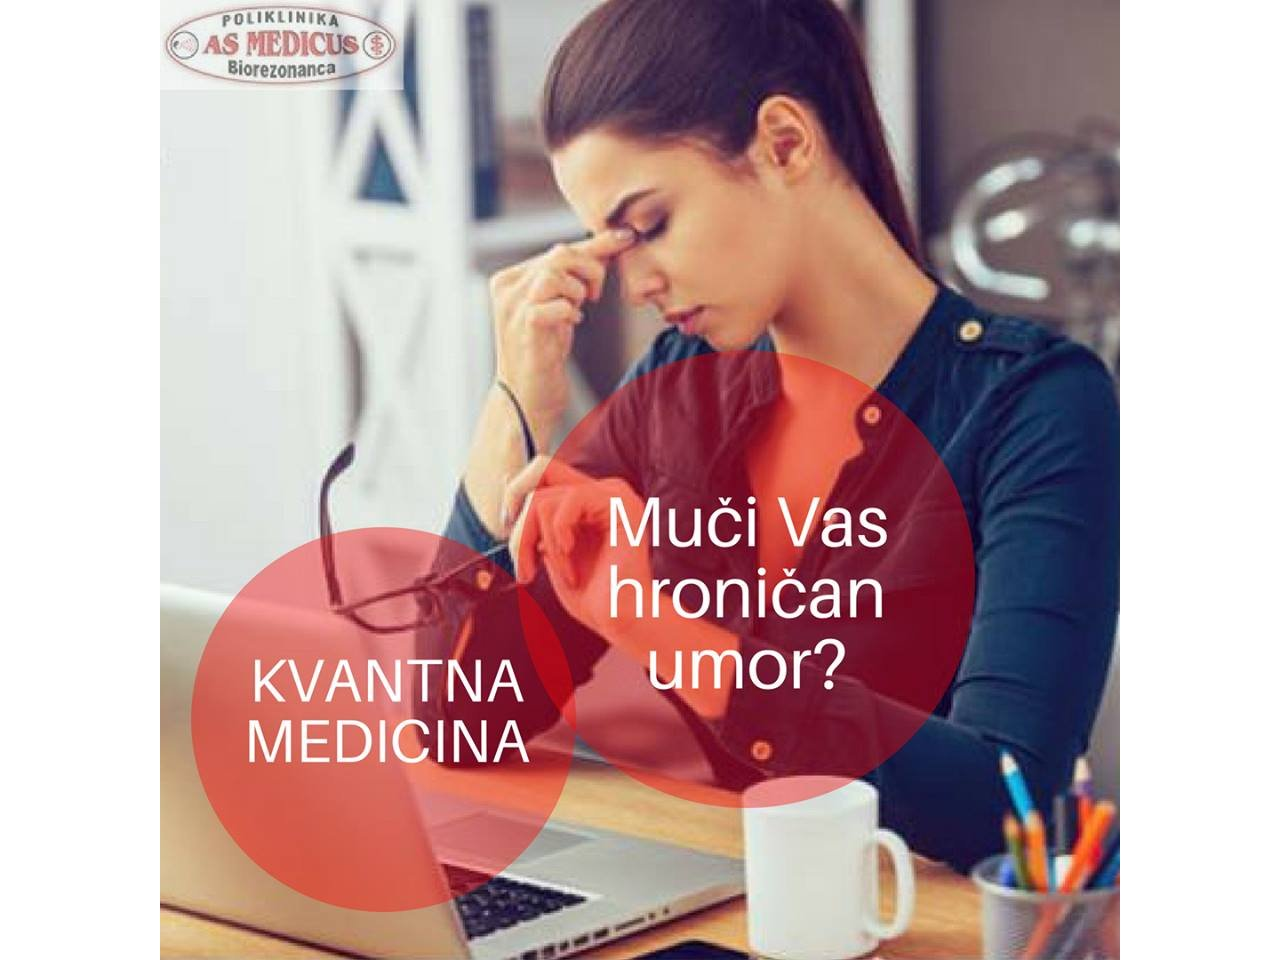 AS MEDICUS BIOREZONANCA - POLIKLINIKA Doctor Beograd